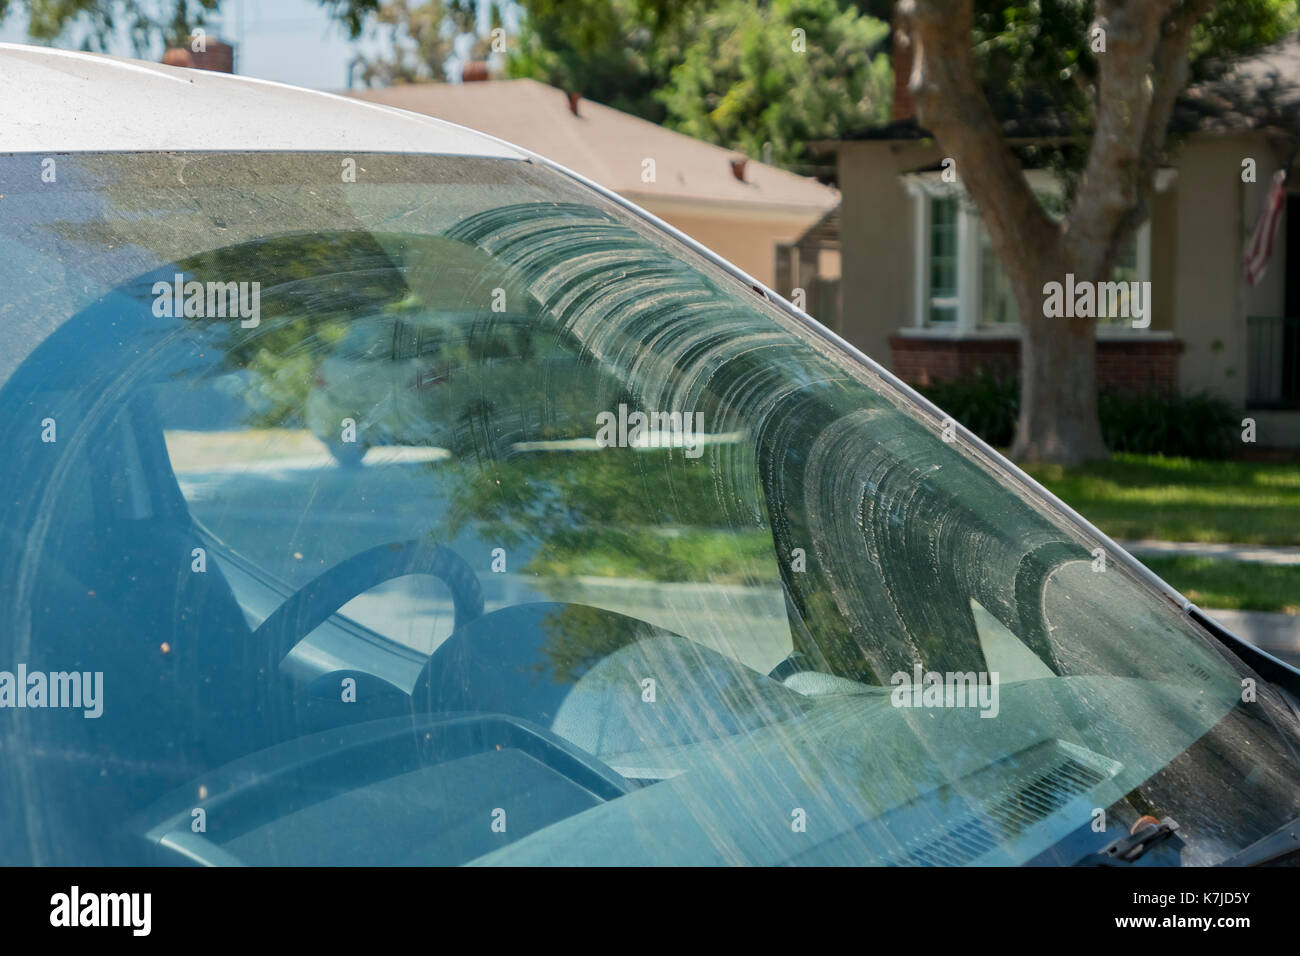 Dirty windshield with mud, saw at Temple City, California, U.S.A. - Stock Image